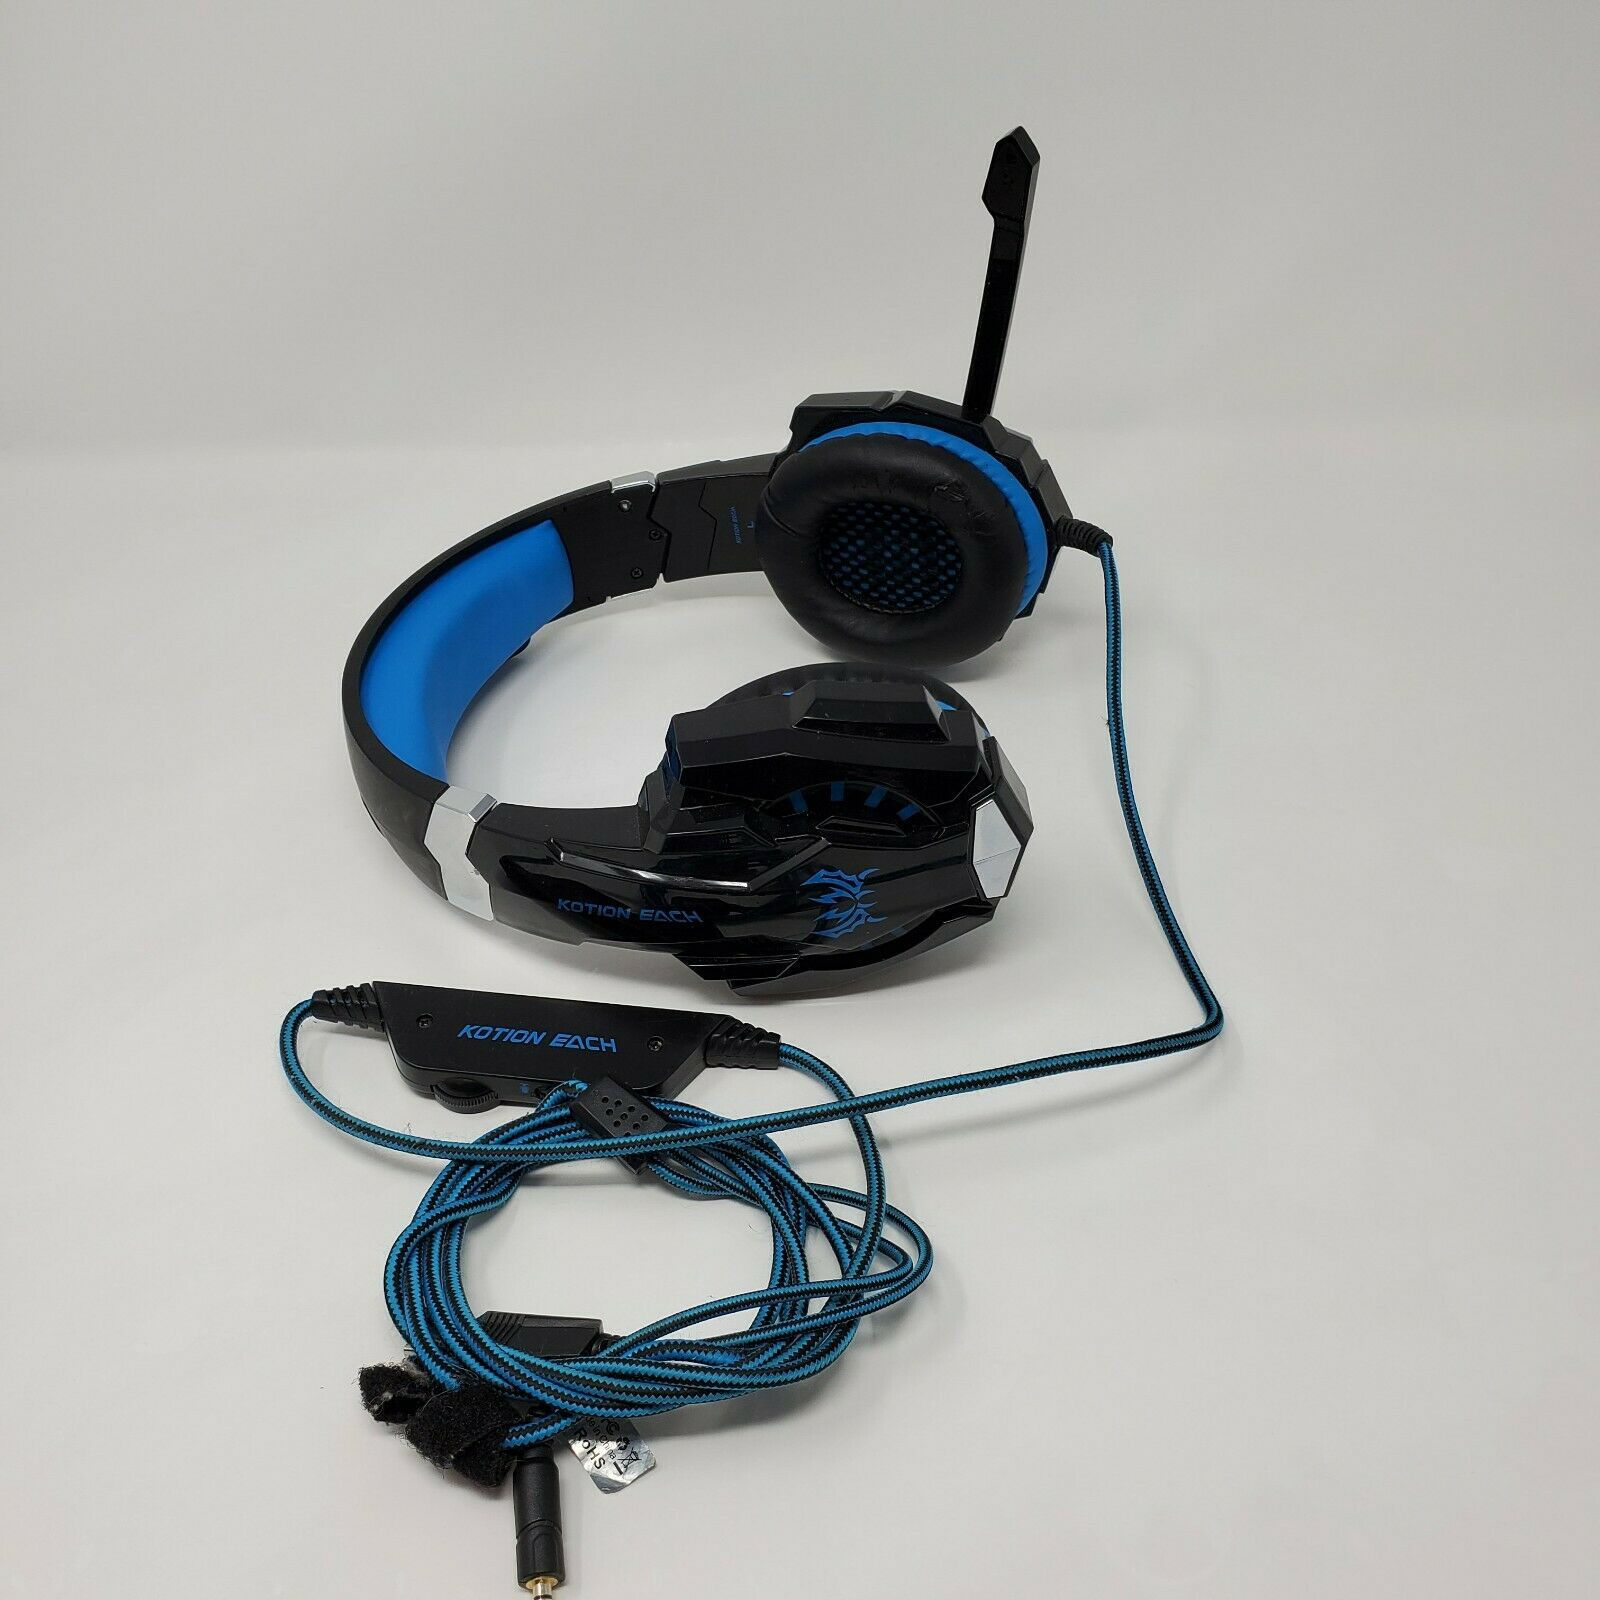 Pro Gaming Headset Headphones Microphone Kotion Each Tested Working Black Blue